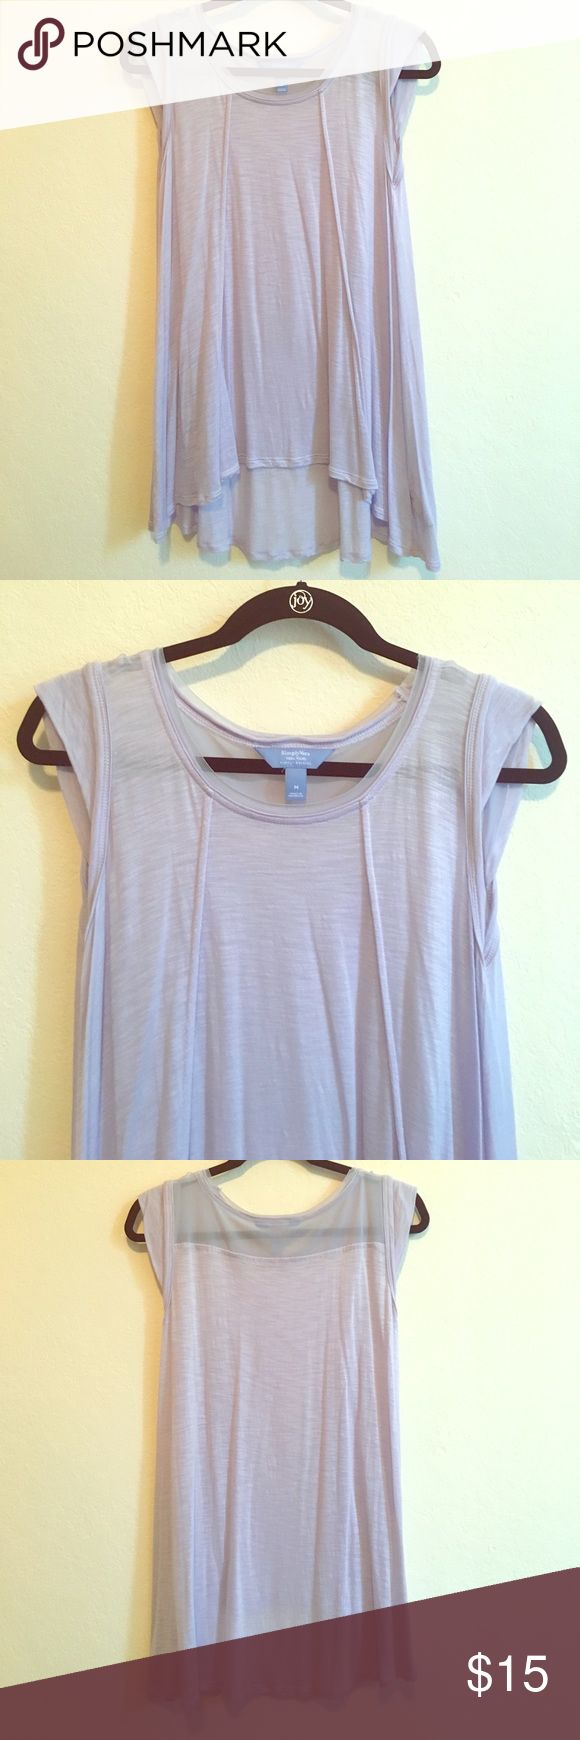 Simply Vera - Vera Wang Trapeze Top Trapeze short-sleeved top with sheer detail on back and neckline. Size M. Never worn. Simply Vera Vera Wang Tops Blouses